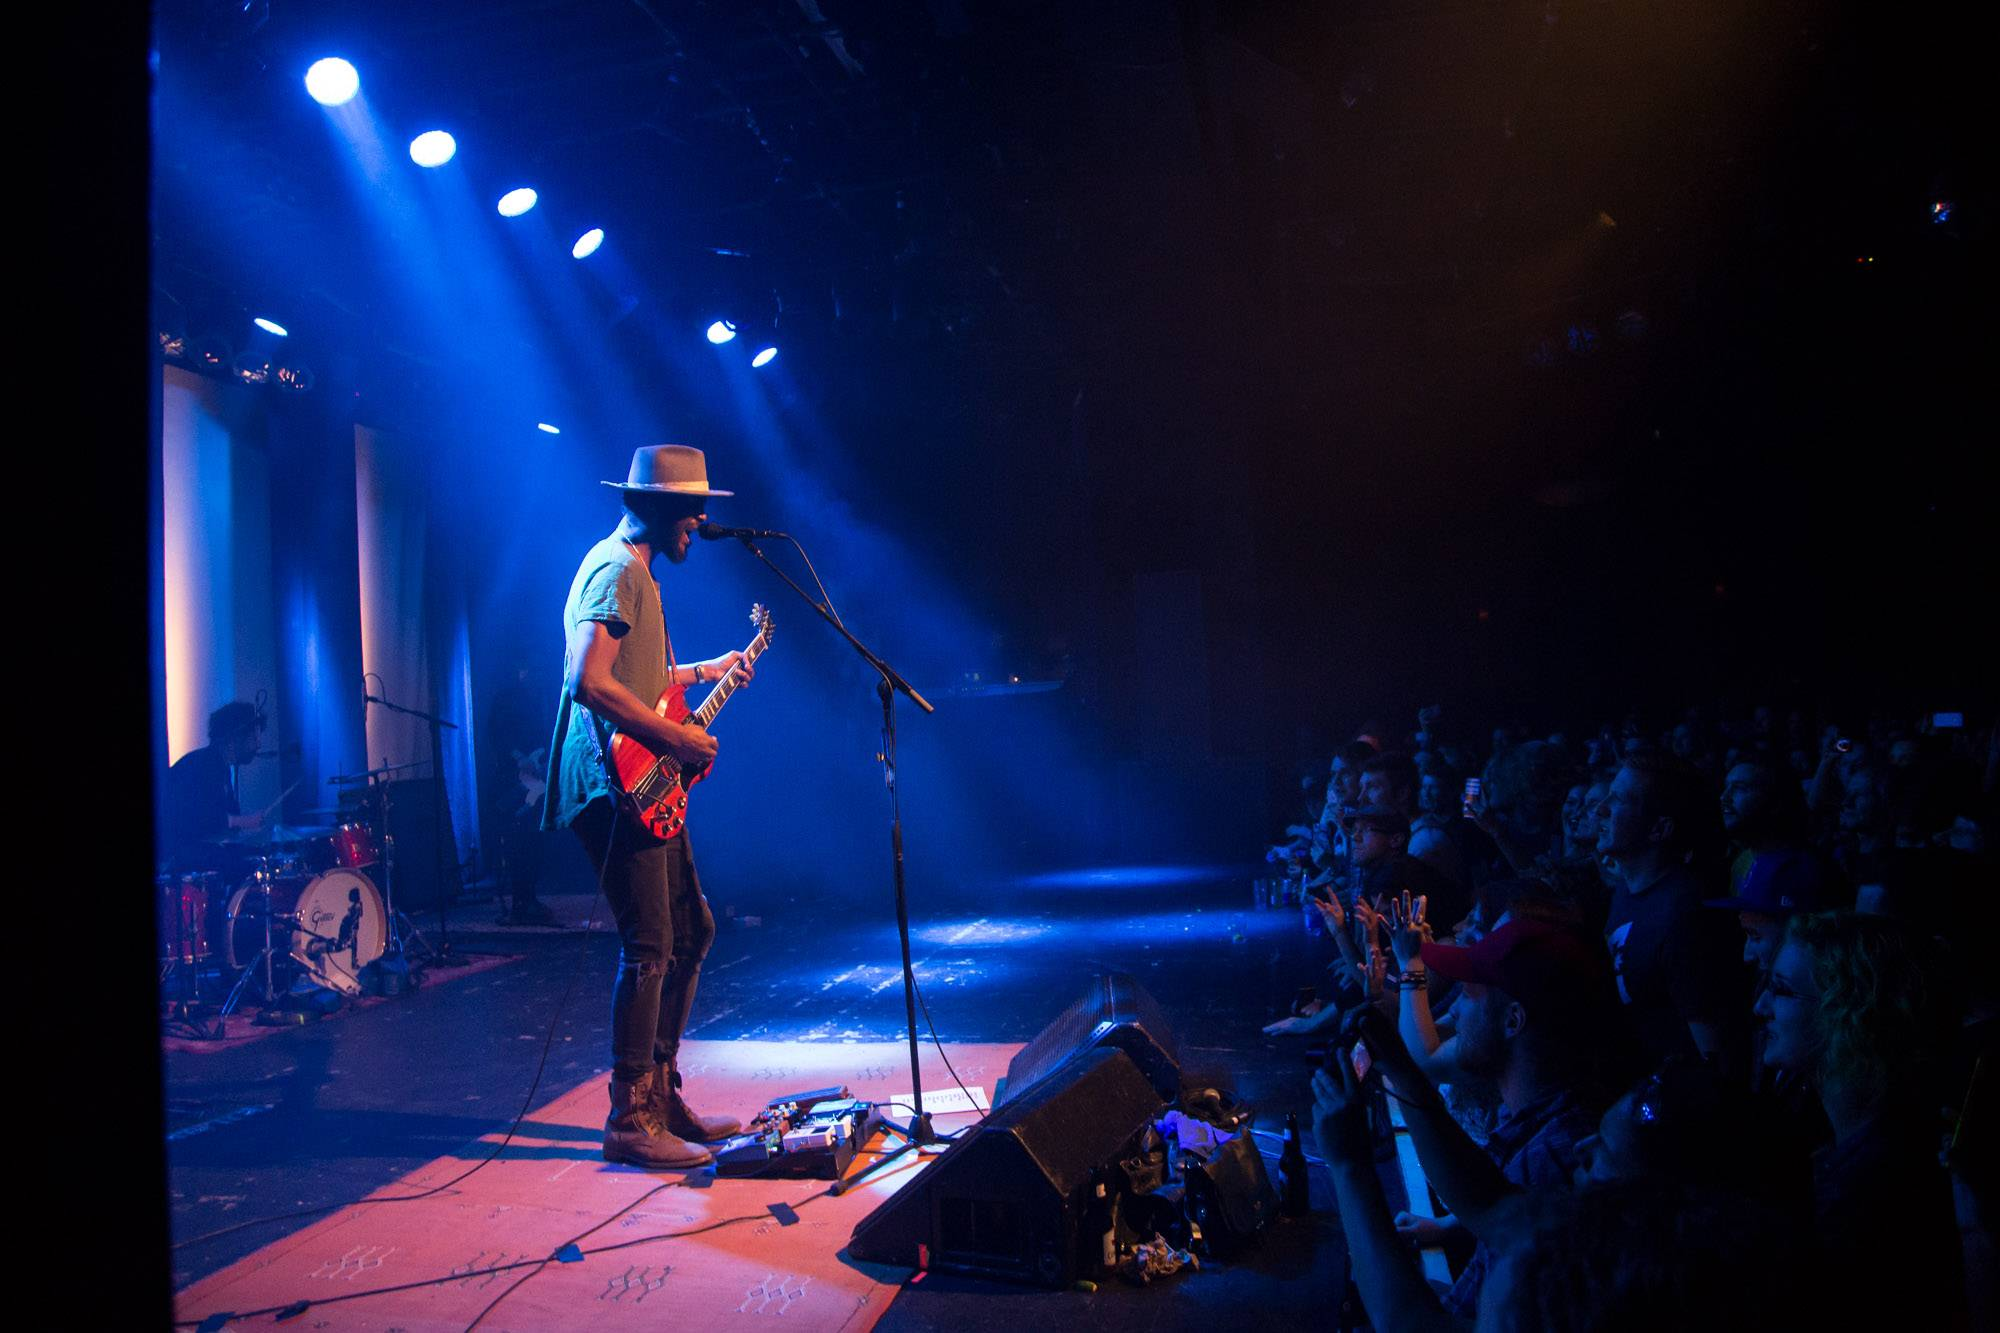 Gary Clark Jr. at the Commodore Ballroom, Vancouver, Apr. 12 2016. Kirk Chantraine photo.